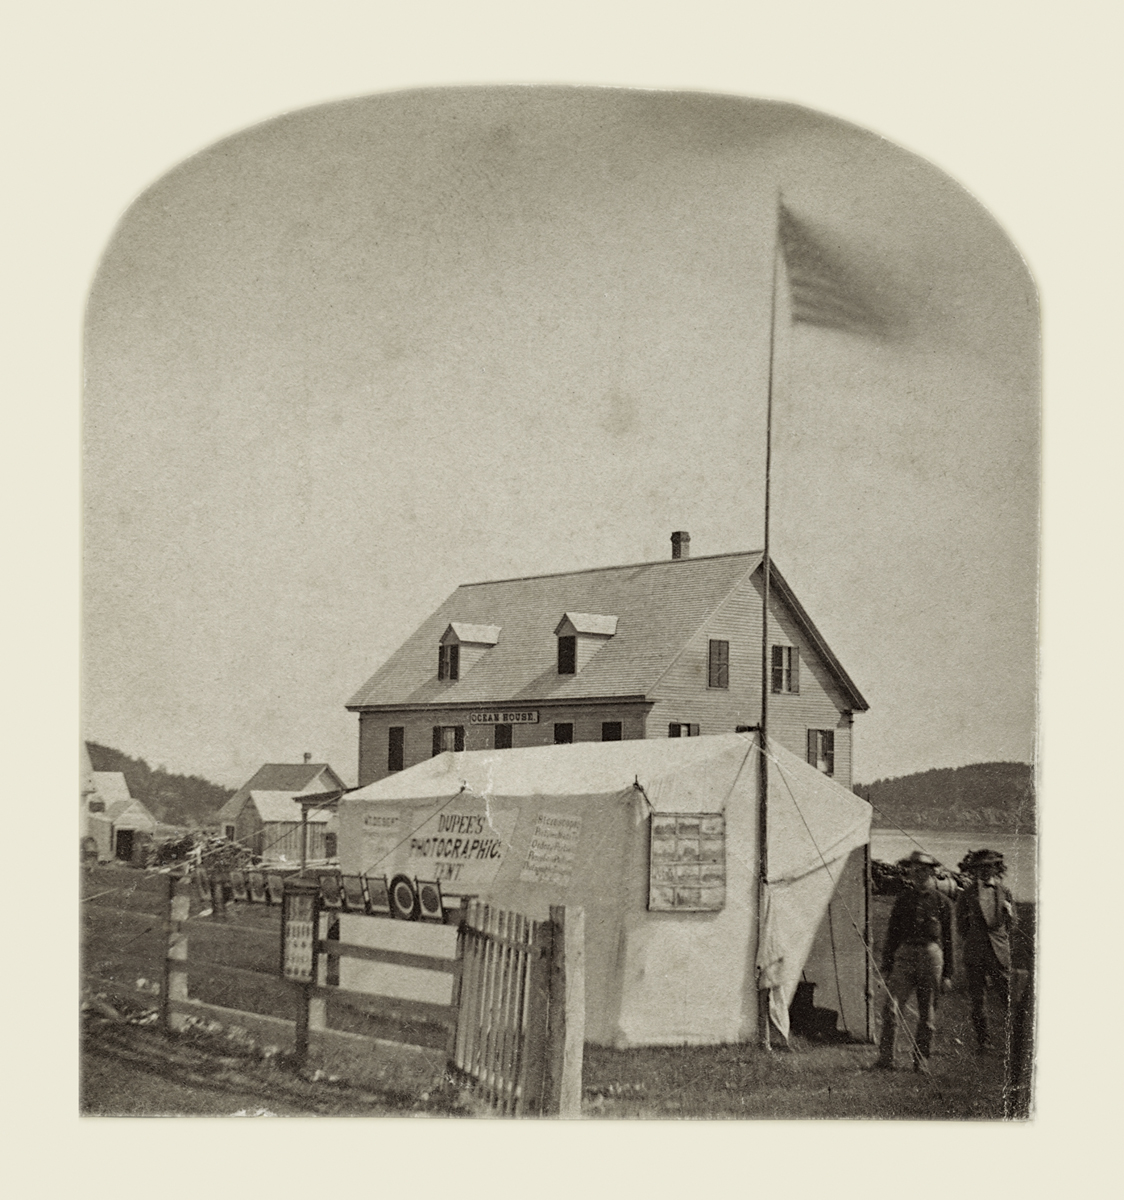 Isaac H. Dupee's Photographic Tent at the Ocean House, Eden, Maine